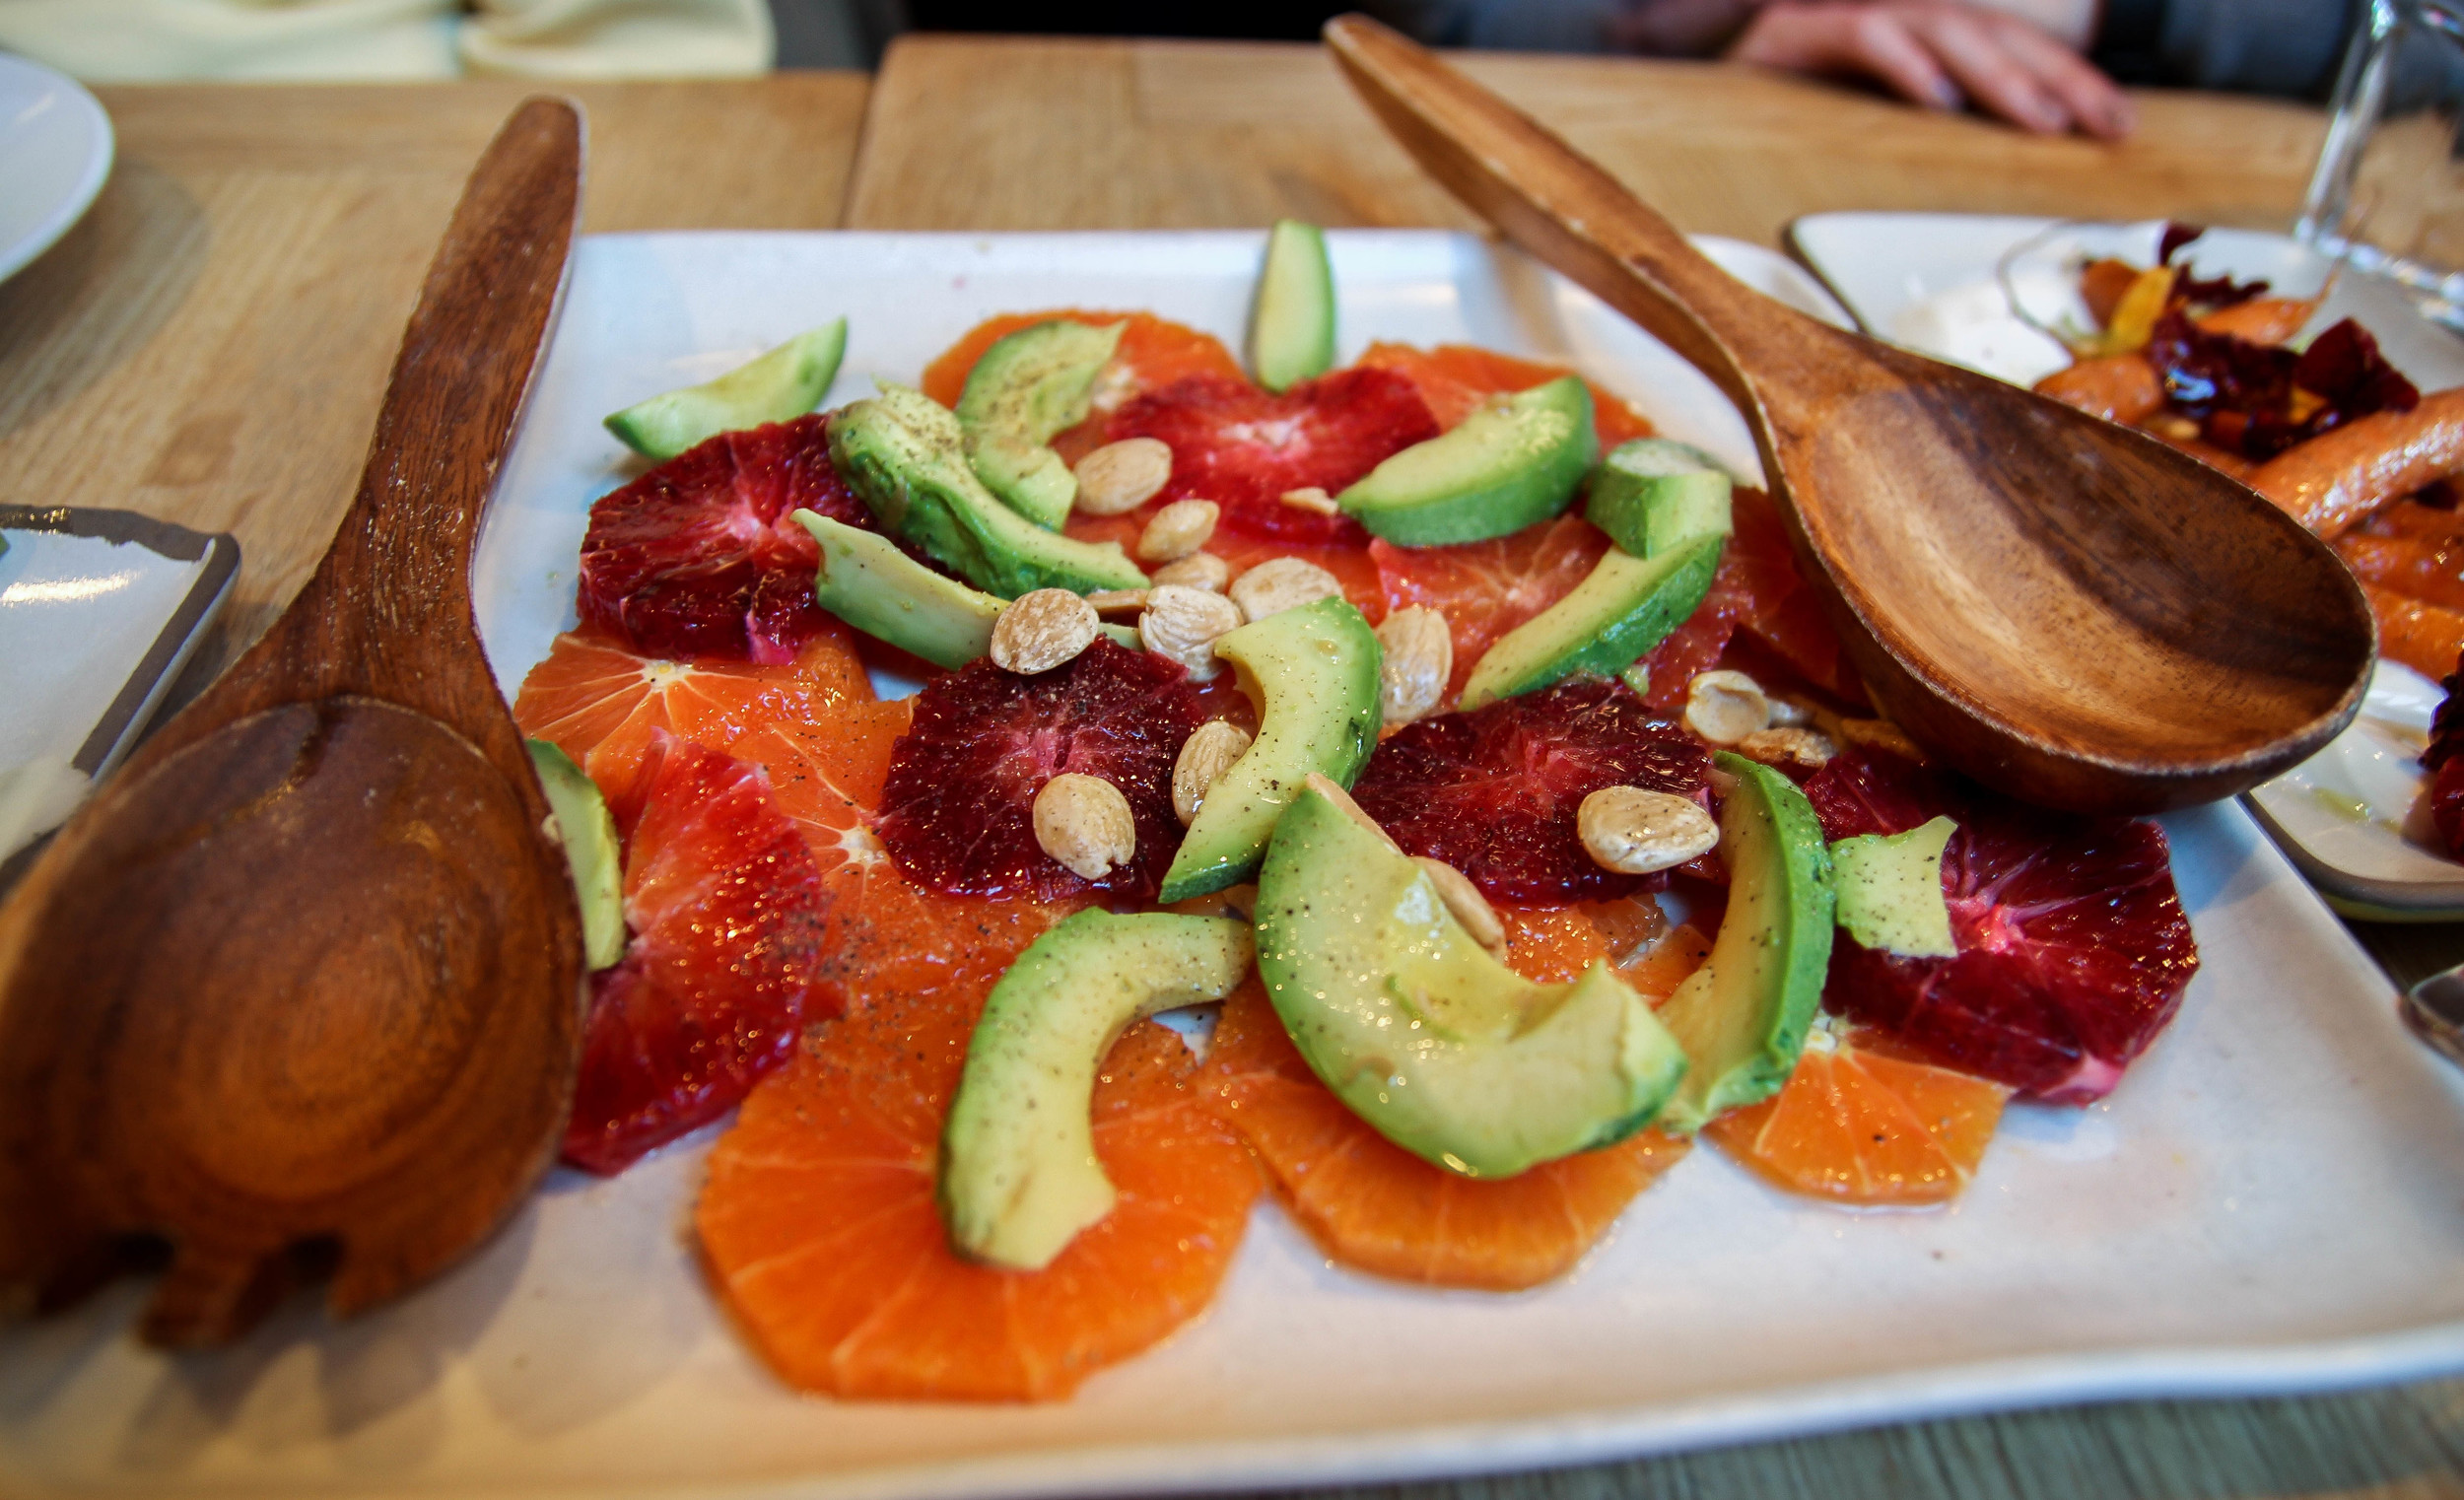 Citrus salad with avocado and Marcona almonds